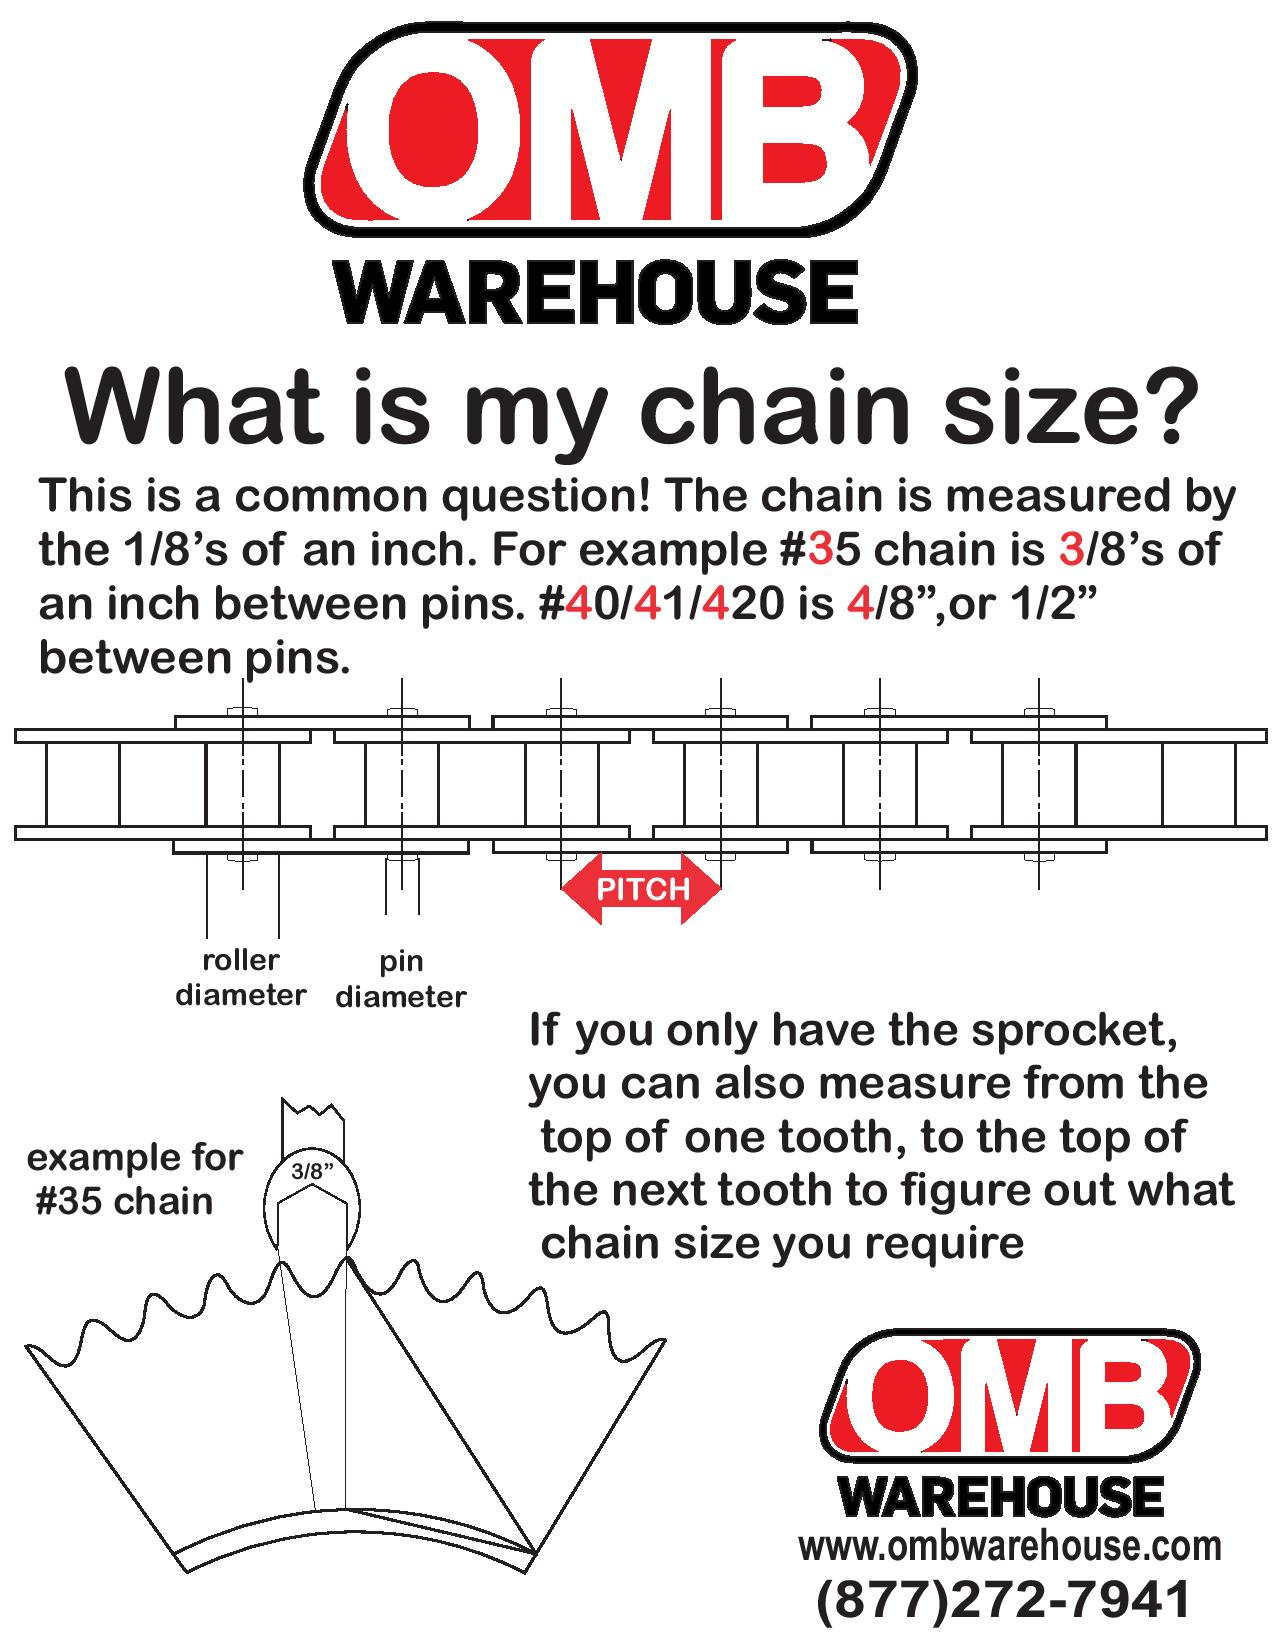 OMBW_chain_size_help-page-001.jpg